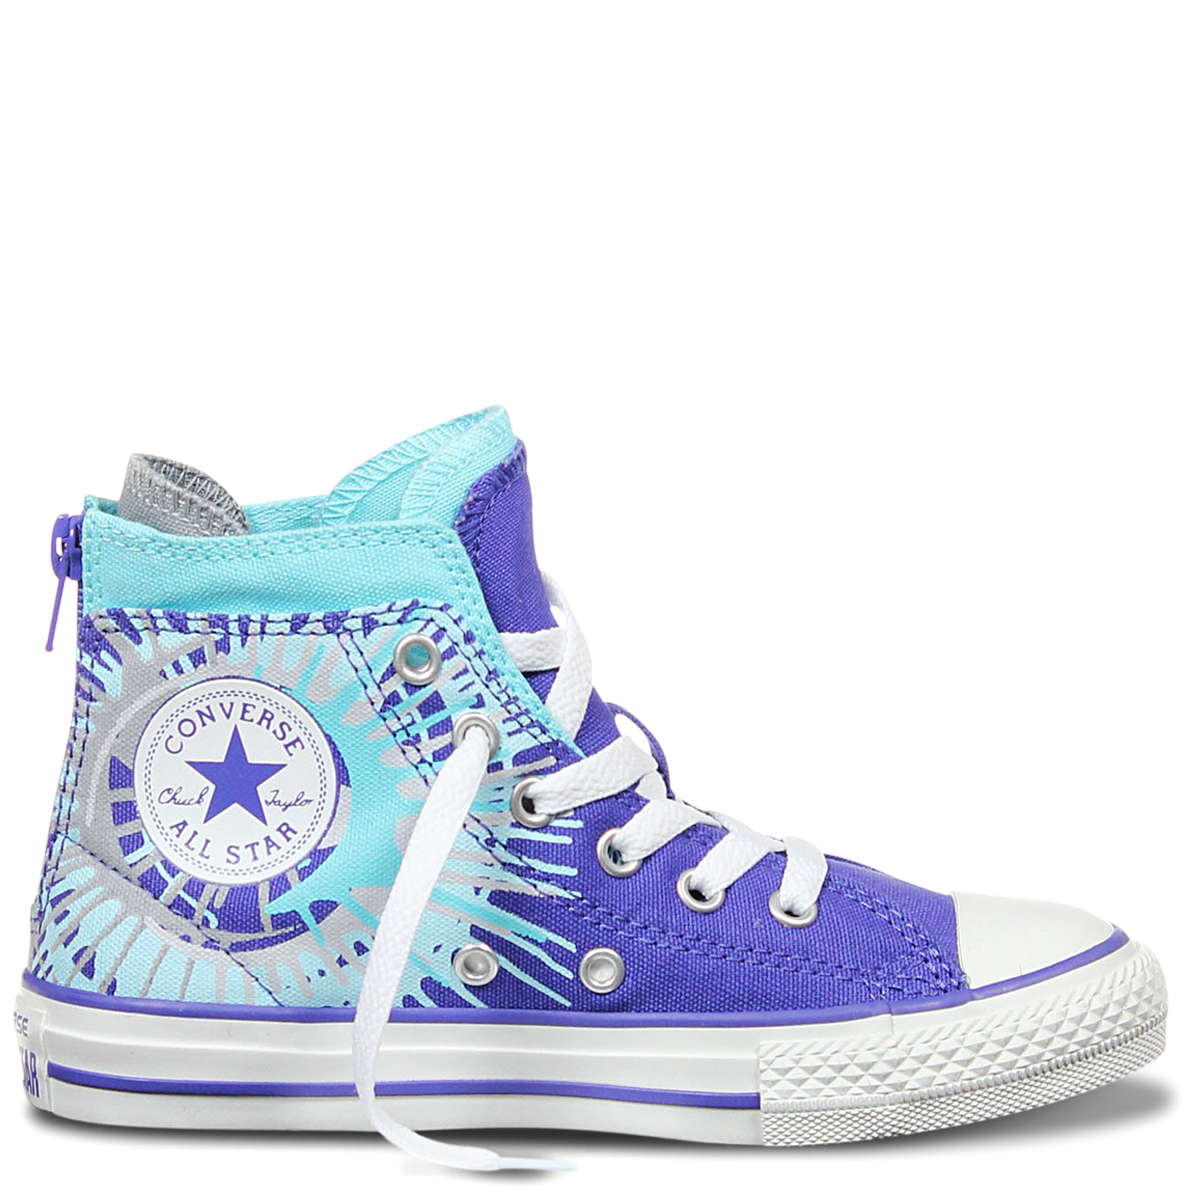 Chuck Taylor All Star Streaming Art Youth Periwinkle Poolside Peacock - Sneakers - Kids